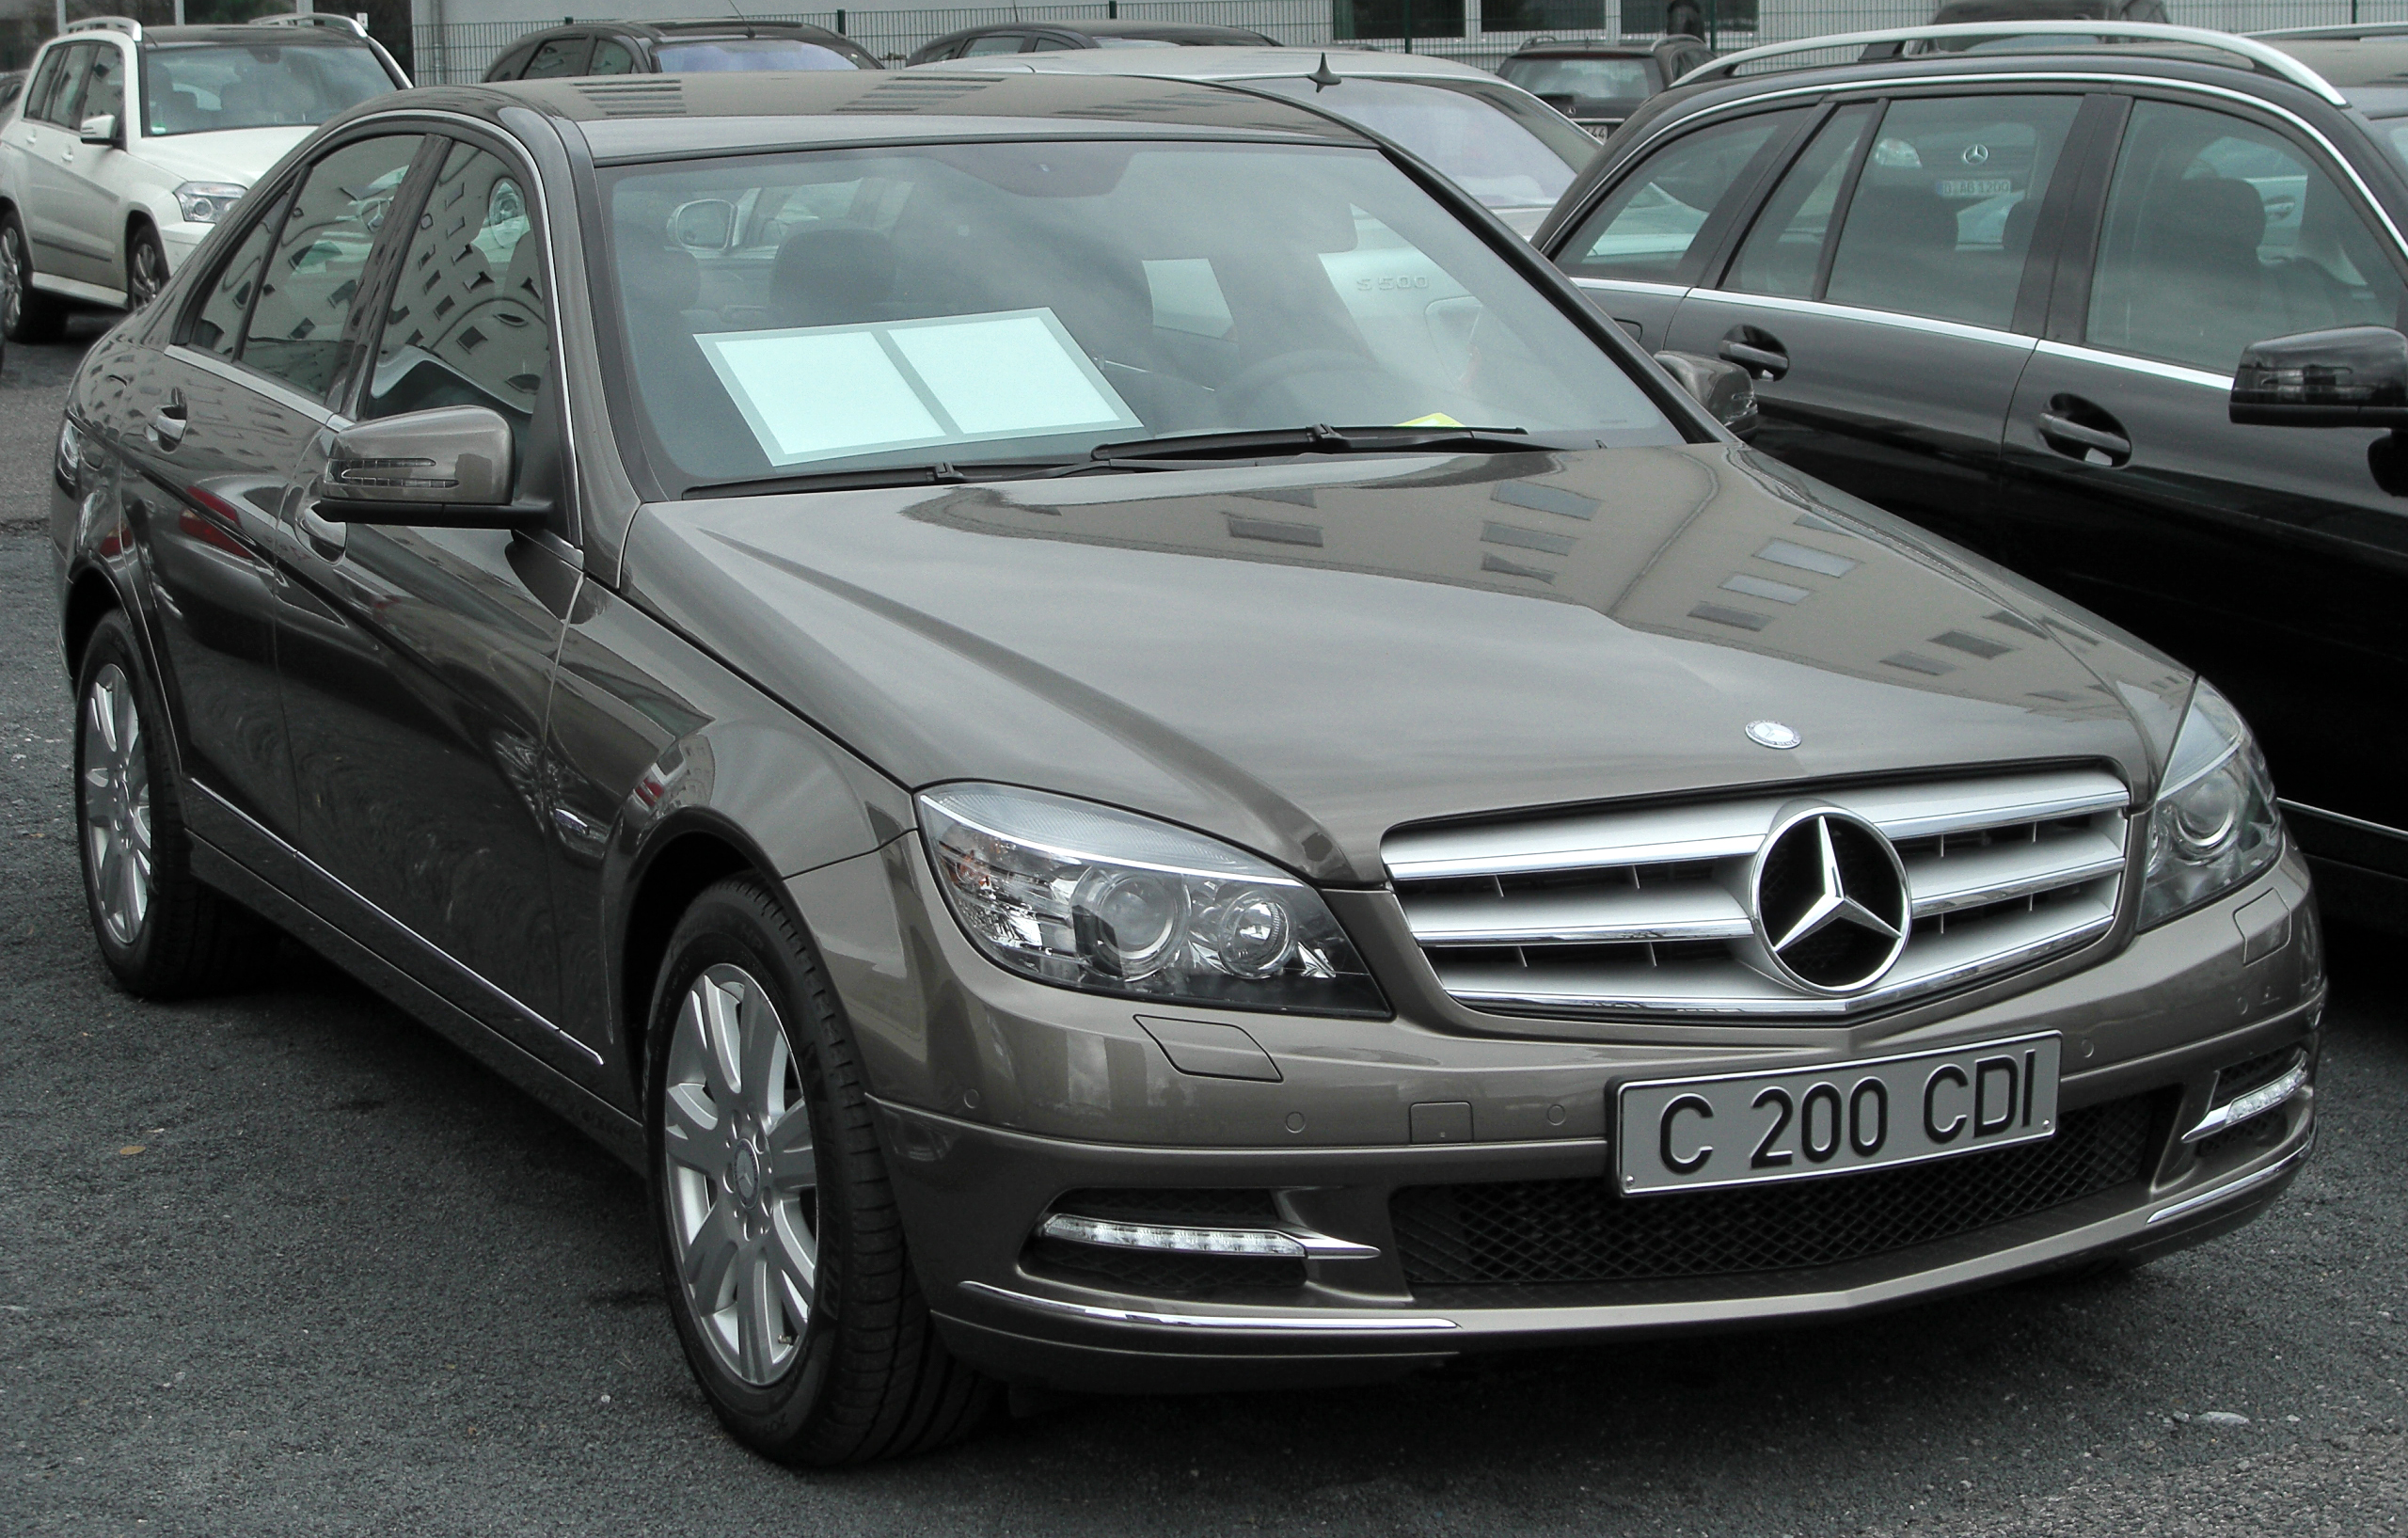 mercedes benz c 200 cdi technical details history photos on better parts ltd